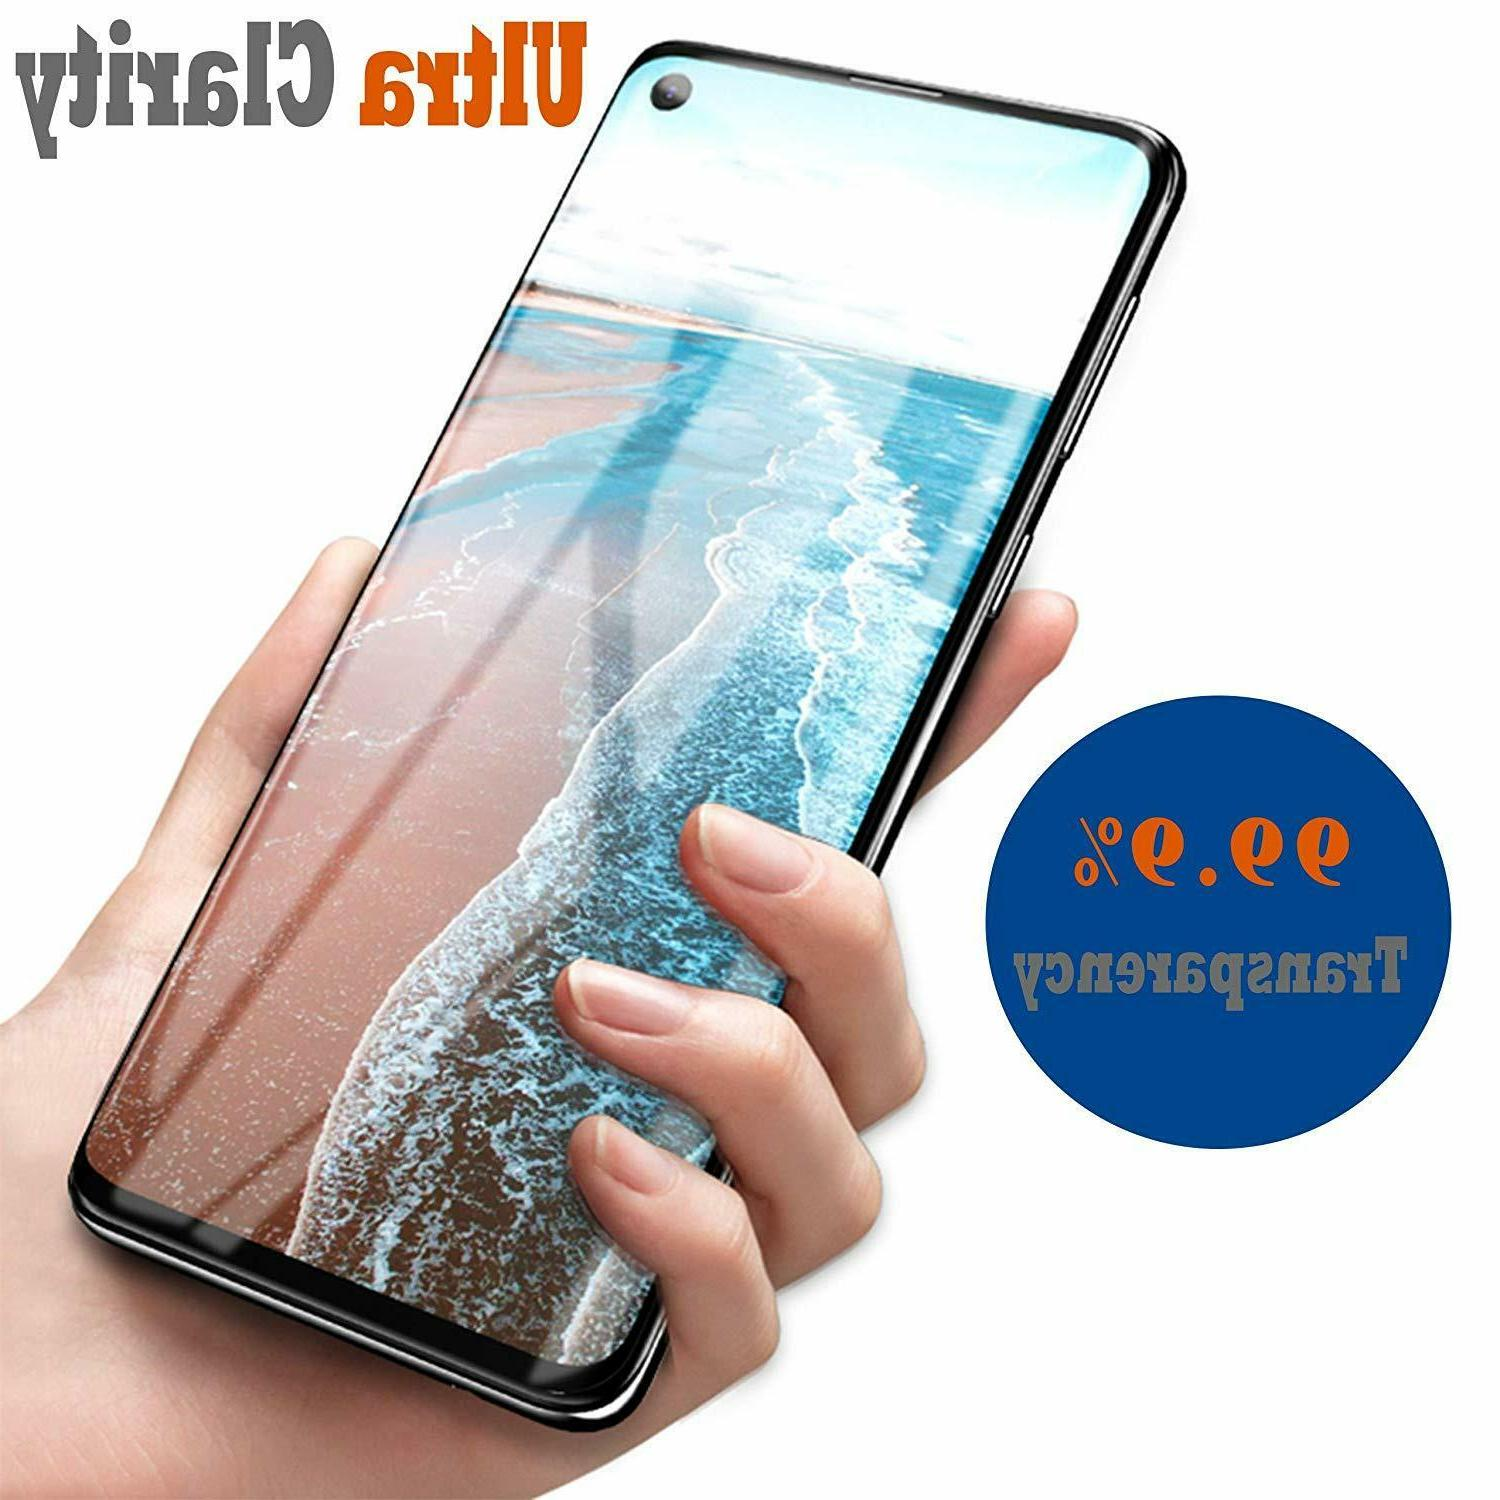 Samsung Galaxy S10 Plus Full Cover Screen Protector